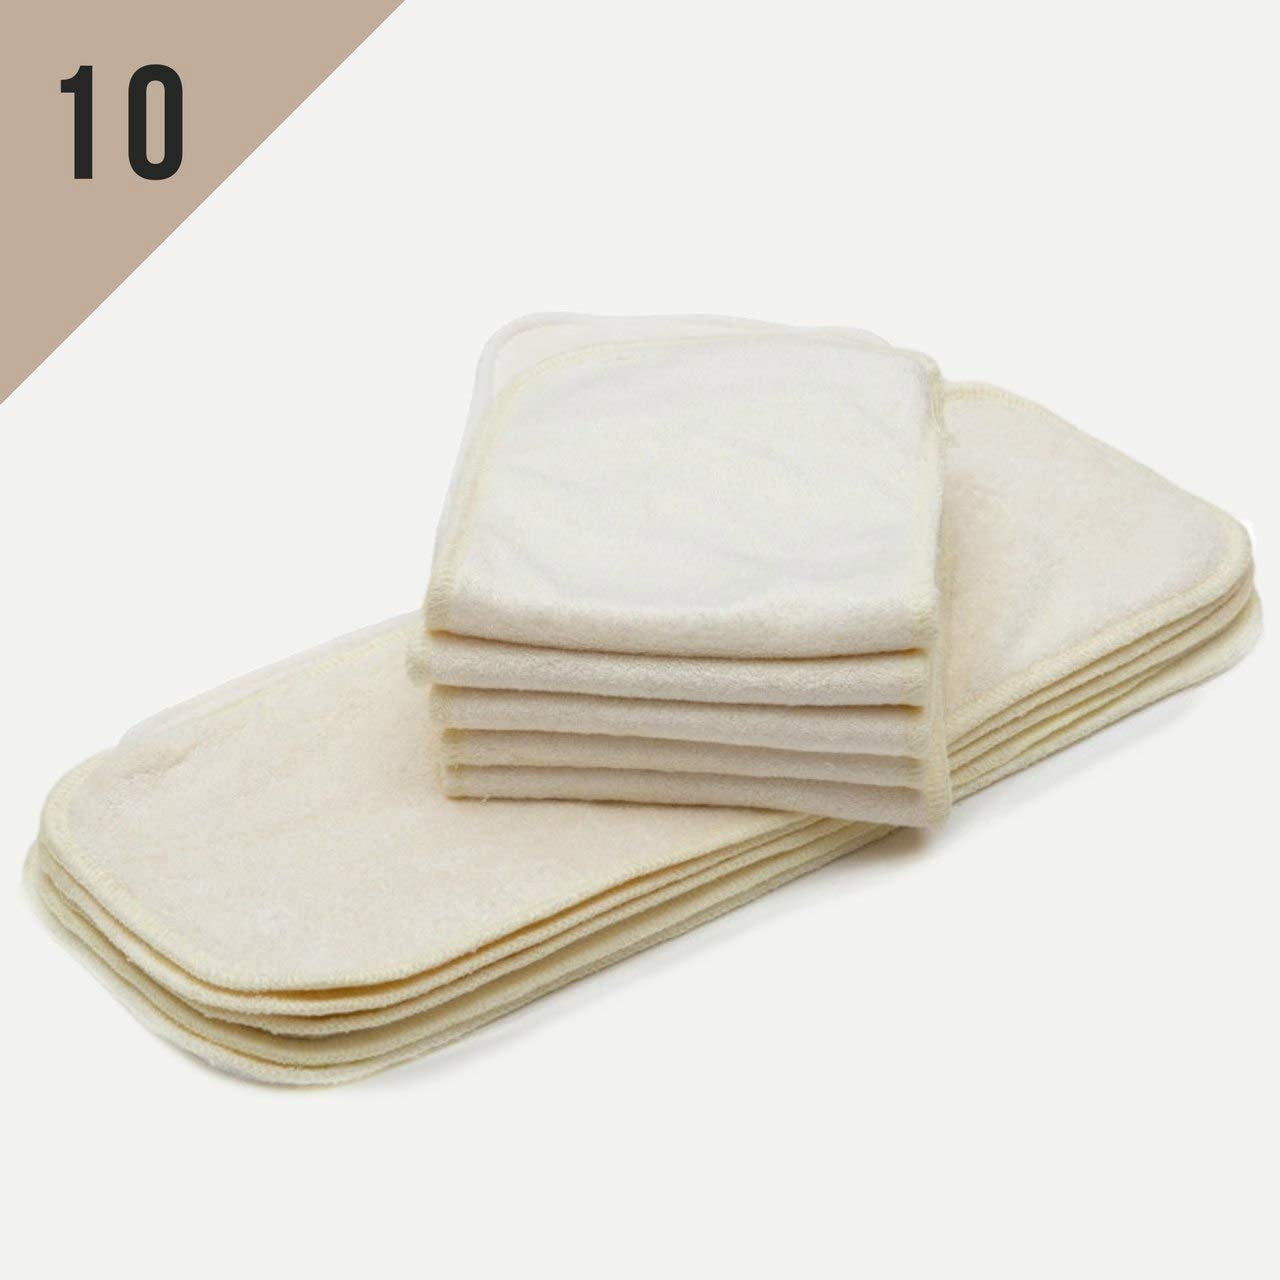 KaWaii Baby Mom Label Bamboo Inserts for Cloth Diapers, 3 Layered Bamboo Inserts, Cloth Diaper Inserts (NO Microfiber OR Fleece), Diaper Inserts for 6–22 lbs Newborn to Toddler - Pack of 10.